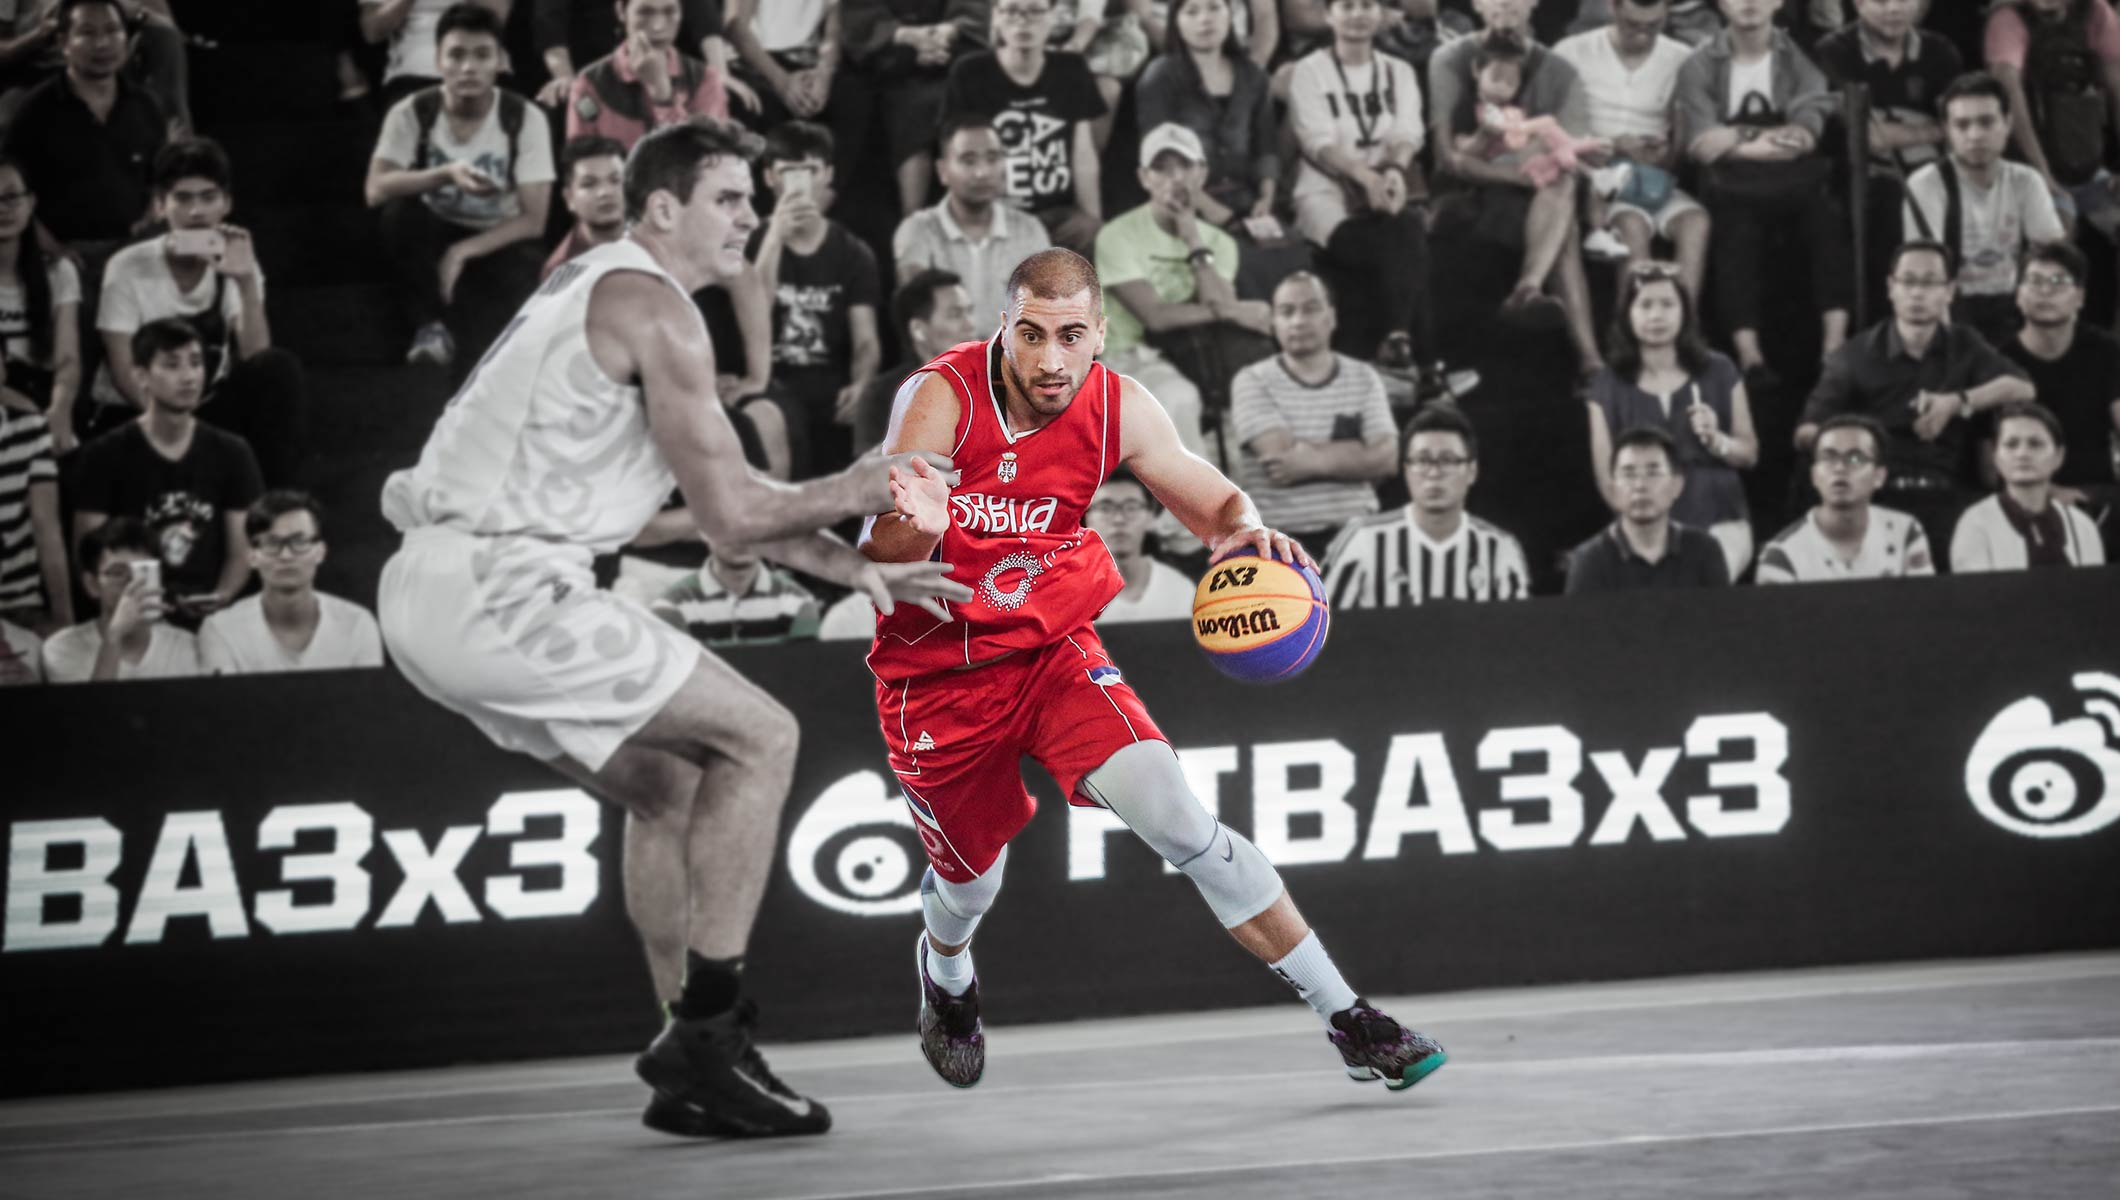 Basketball 3x3 ready to rock Tokyo 2020 Olympic Games - Olympic News